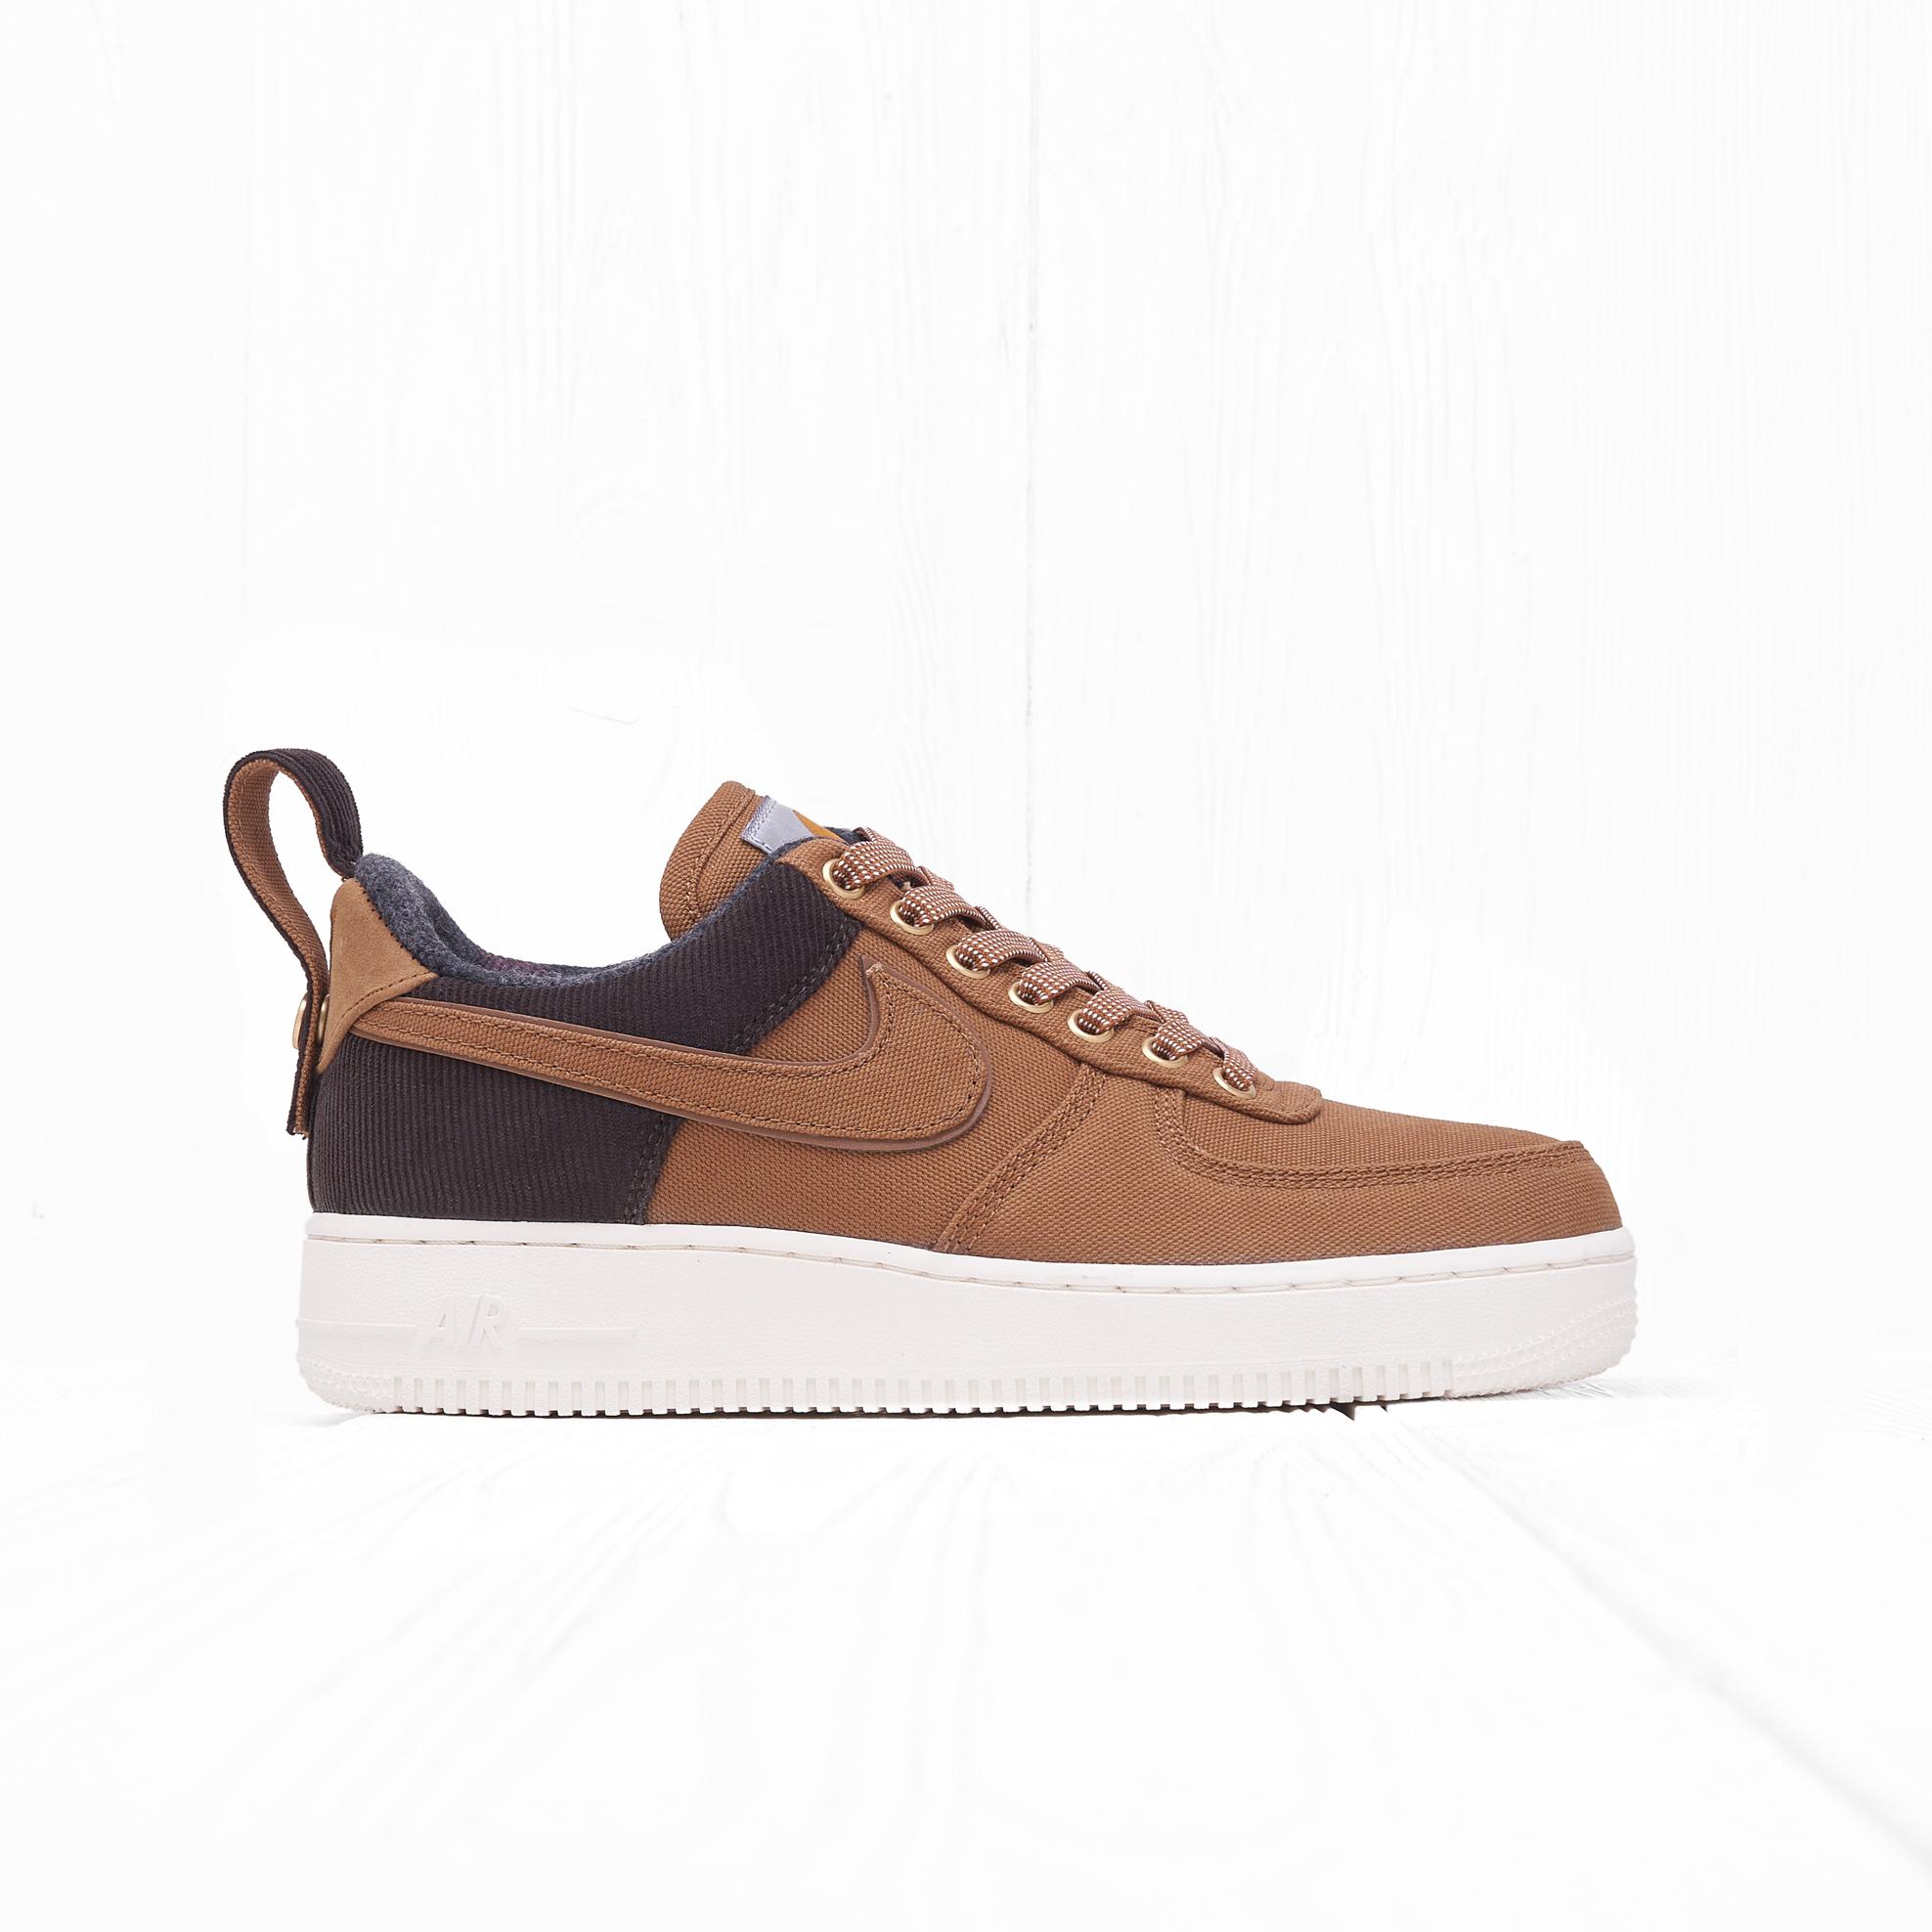 Кроссовки Nike x Carhartt WIP AIR FORCE 1 07 PRM Ale Brown/Ale Brown/Sail